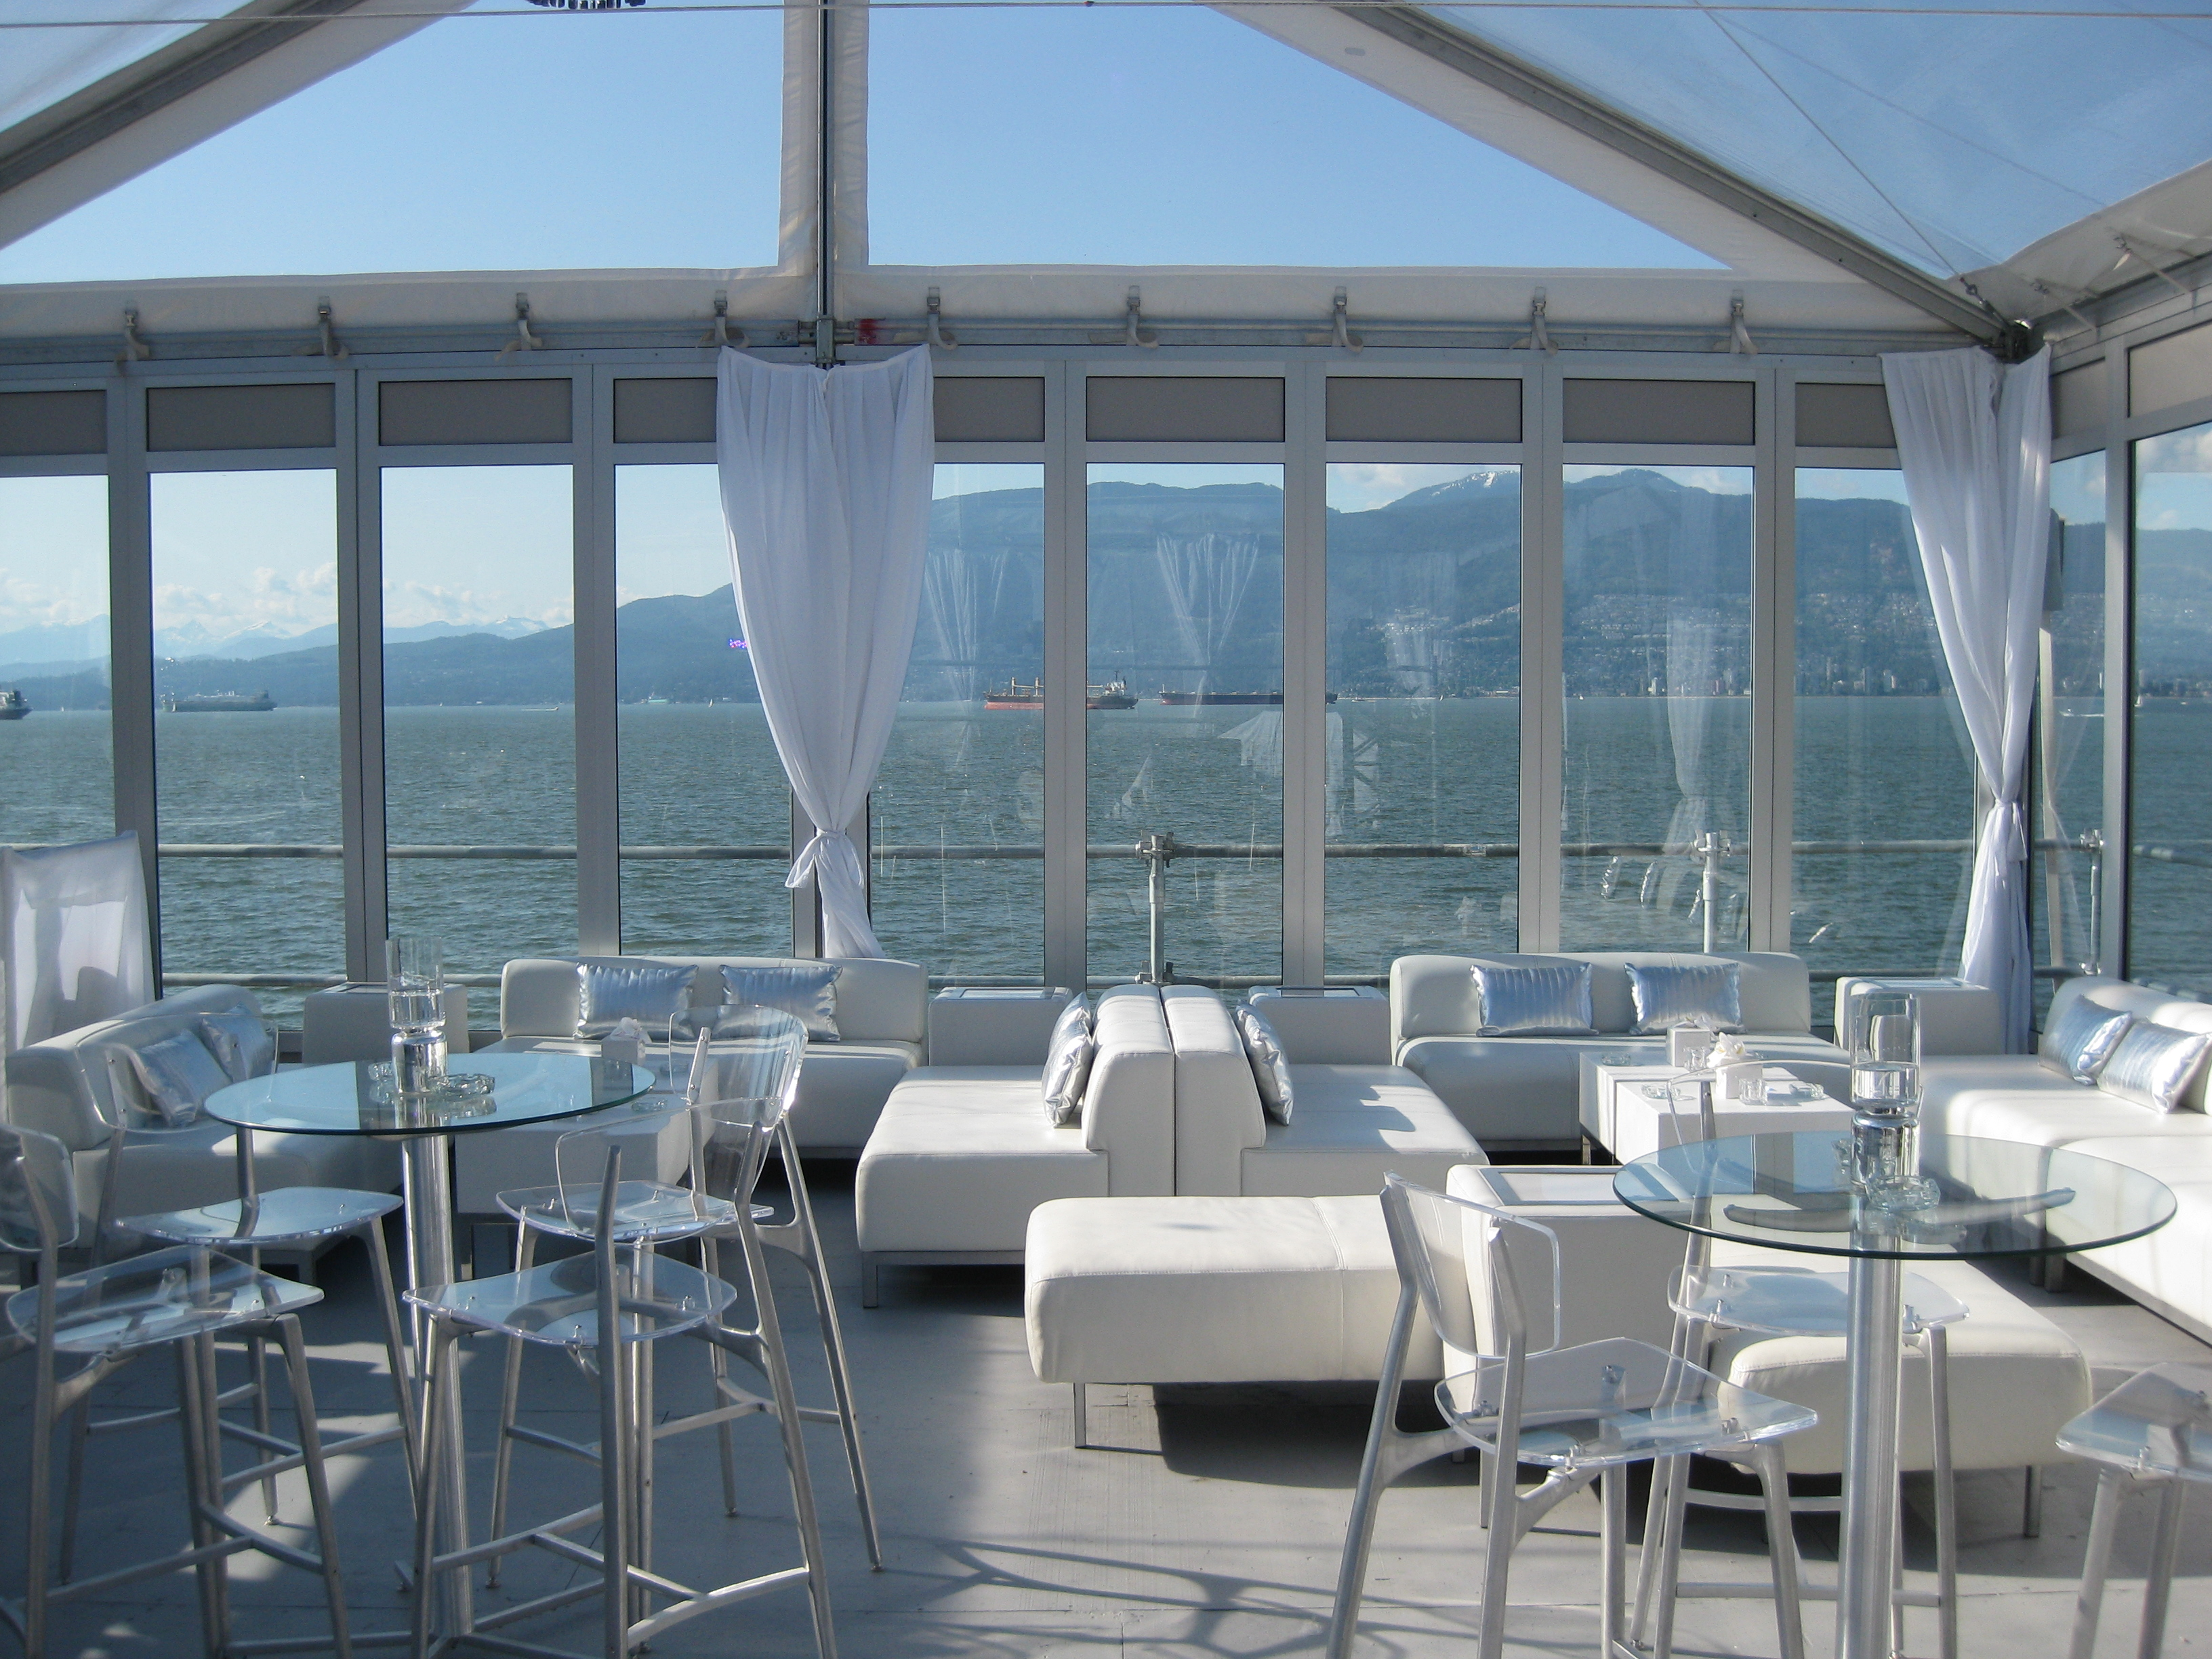 Olympic Tent glass walls